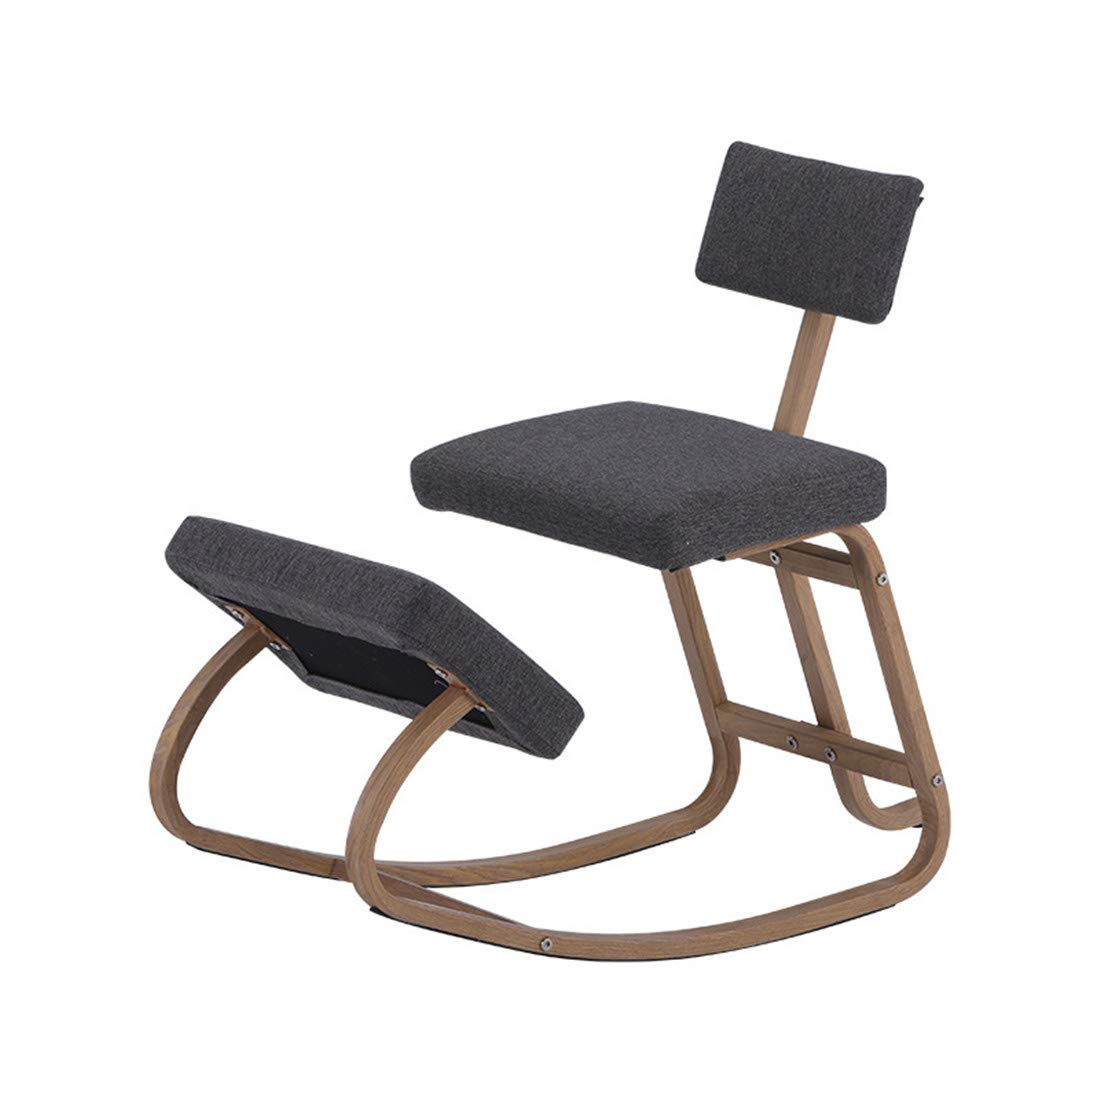 Kneeling Chairs Home Office Ergonomic Balance Kneel Stool Rocking with Back Support for Perfect Posture Kids Children with Backrest by AJ ZJ Kneeling Chairs